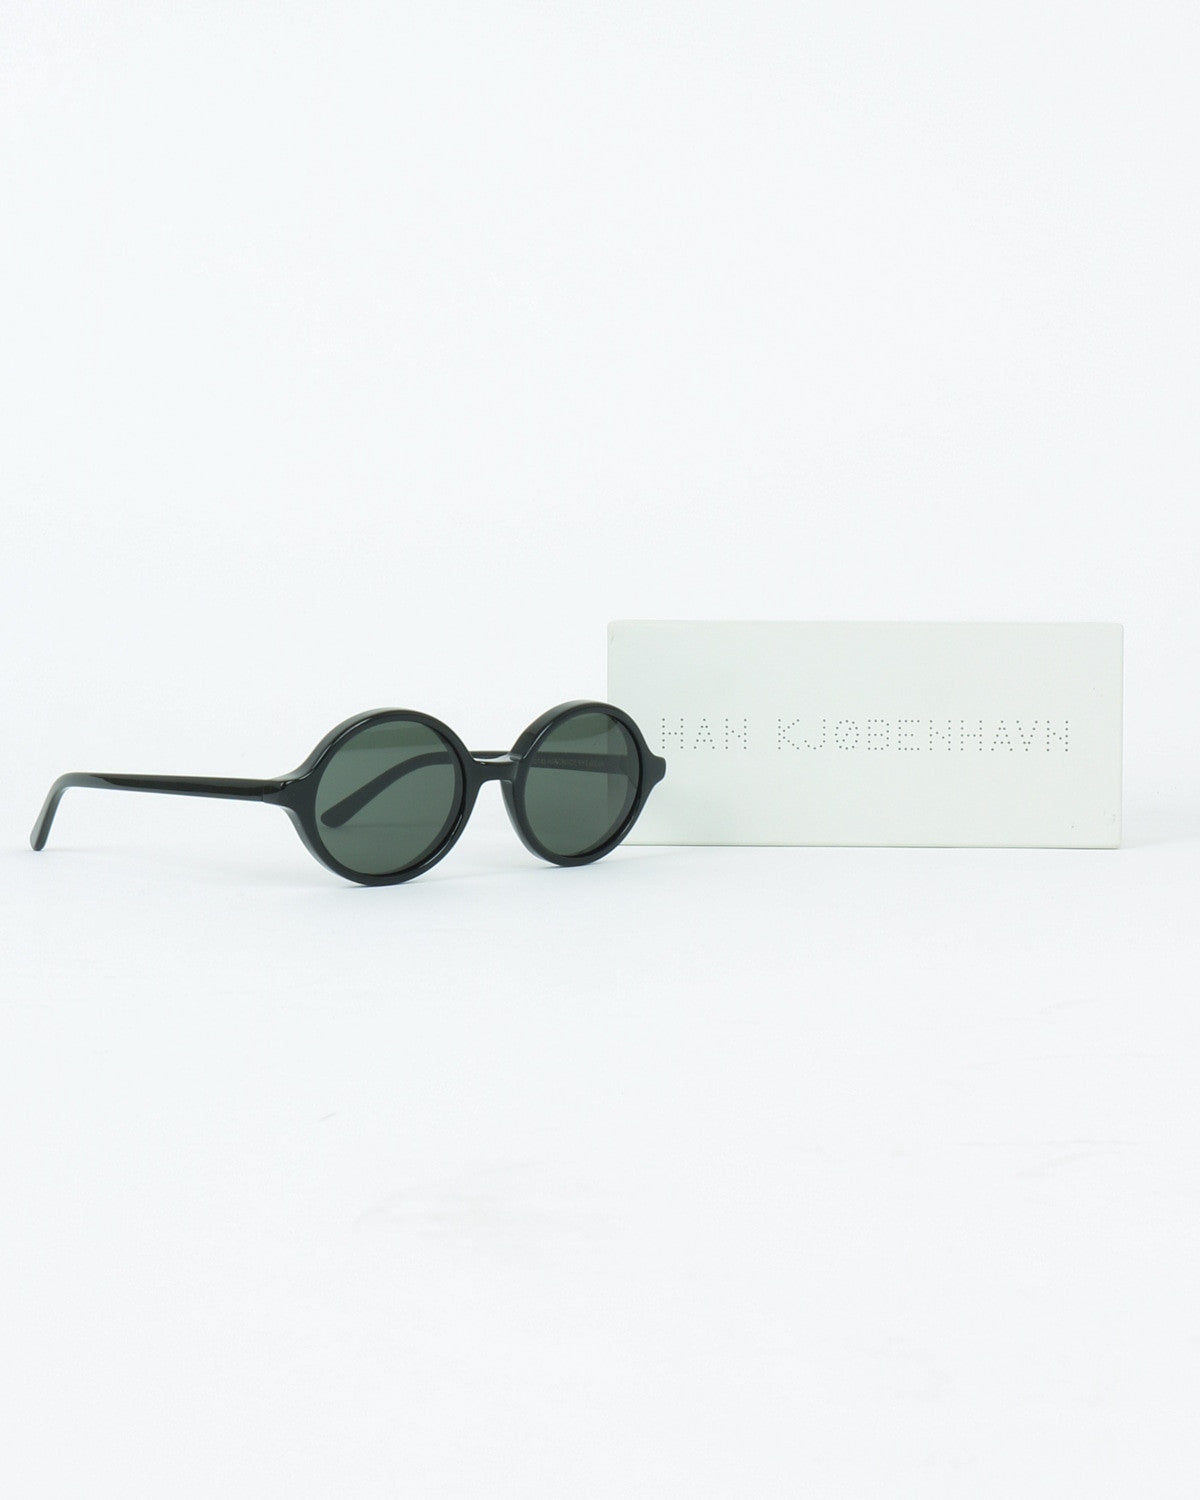 han kjobenhavn_doc_sunglasses_black_view_4_4